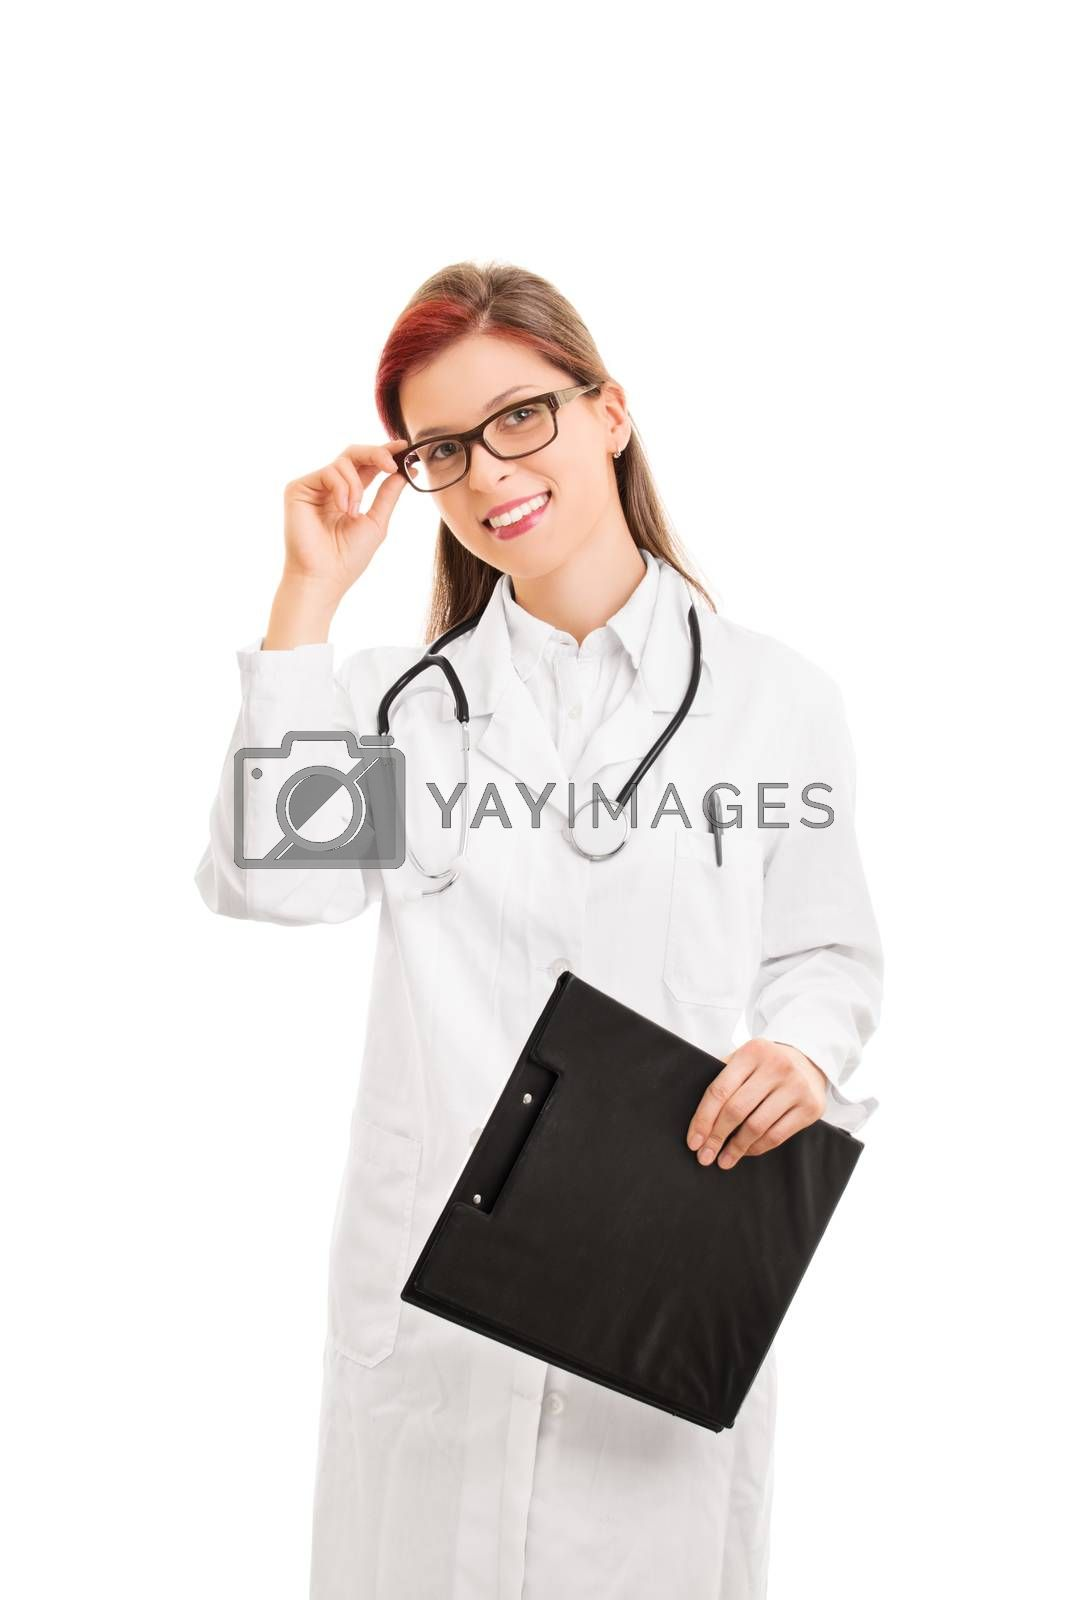 We're here for you. Portrait of a smiling beautiful febale doctor holding a notepad, isolated on white background.